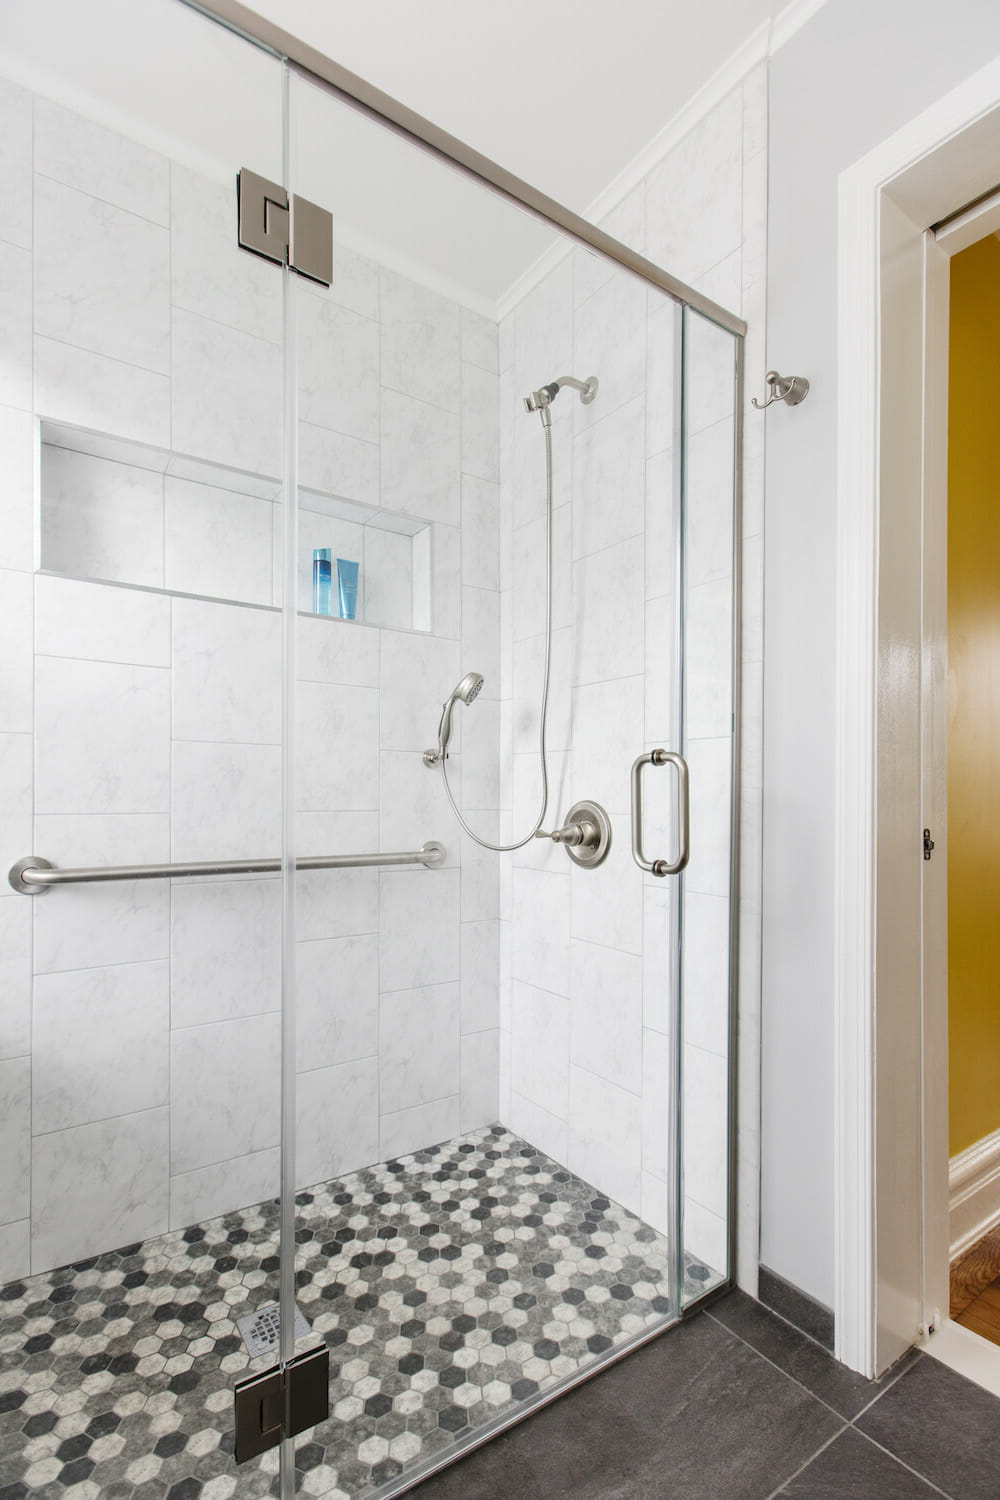 accessible design, curbless shower, bathroom trends 2019